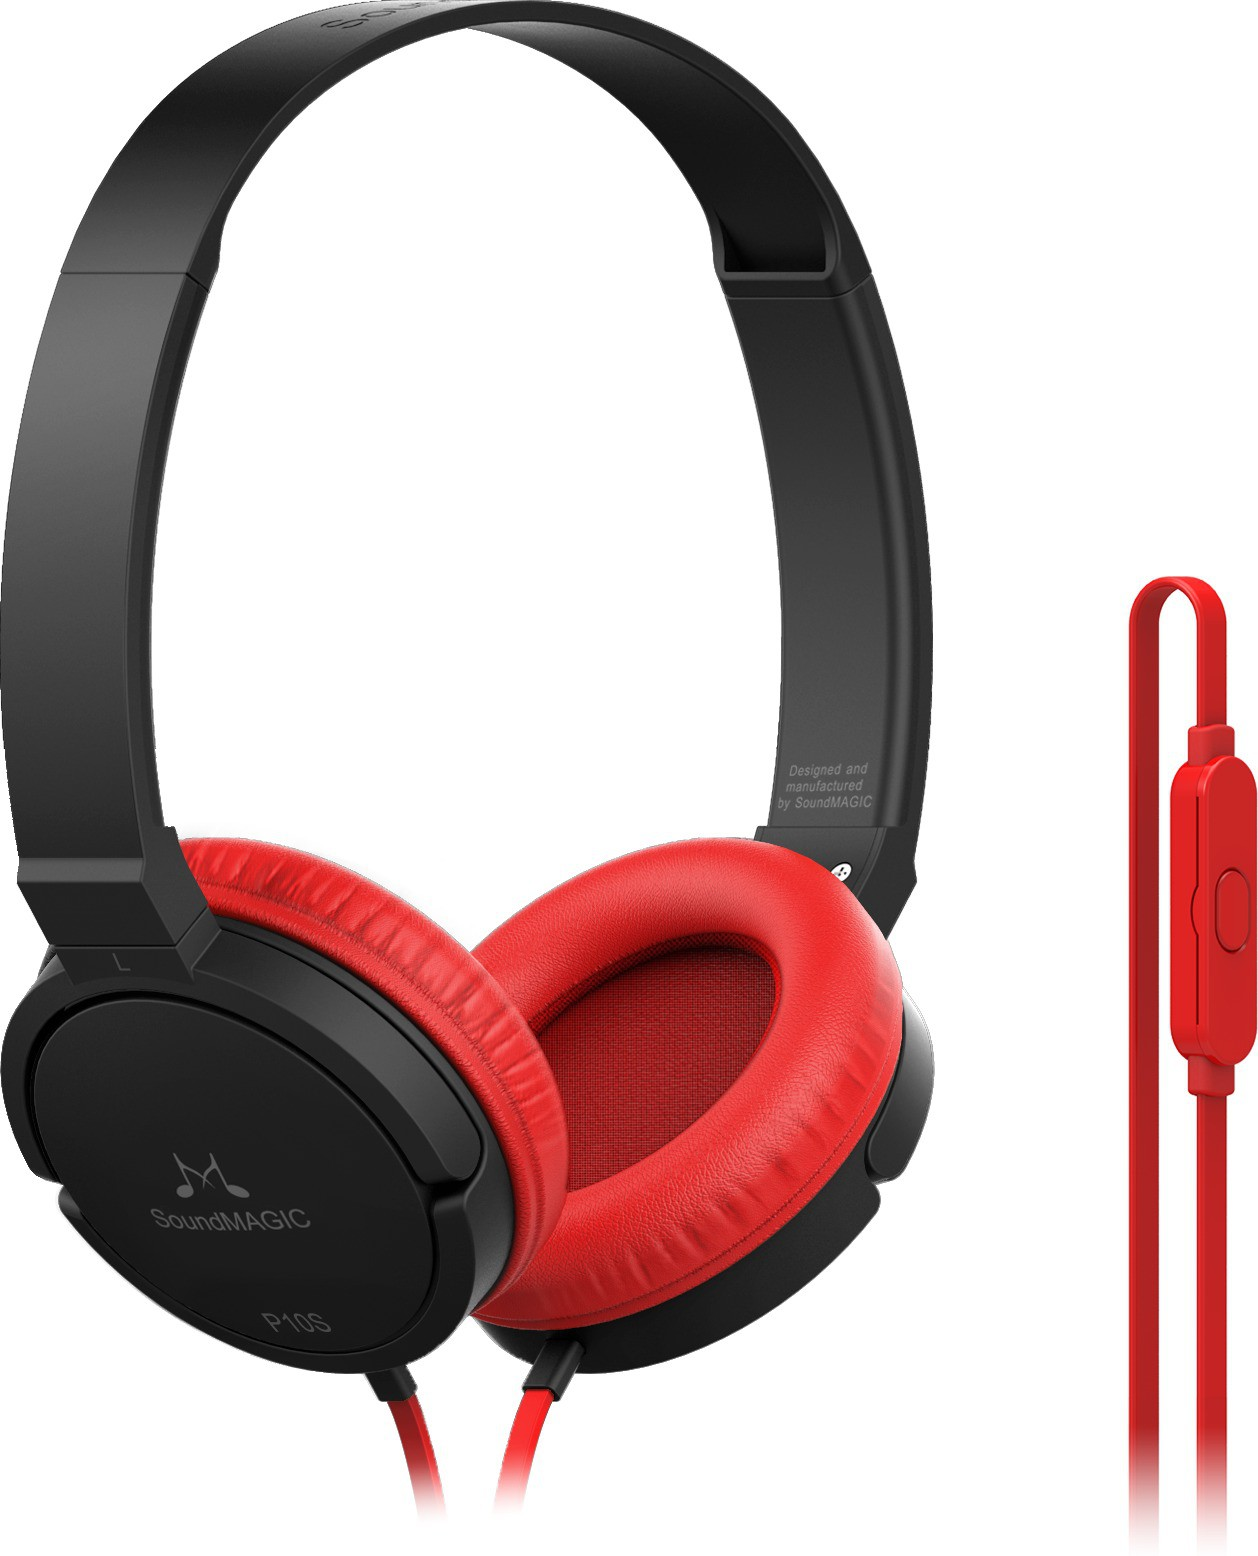 SoundMagic P10S Wired Headset With Mic(Red Black)